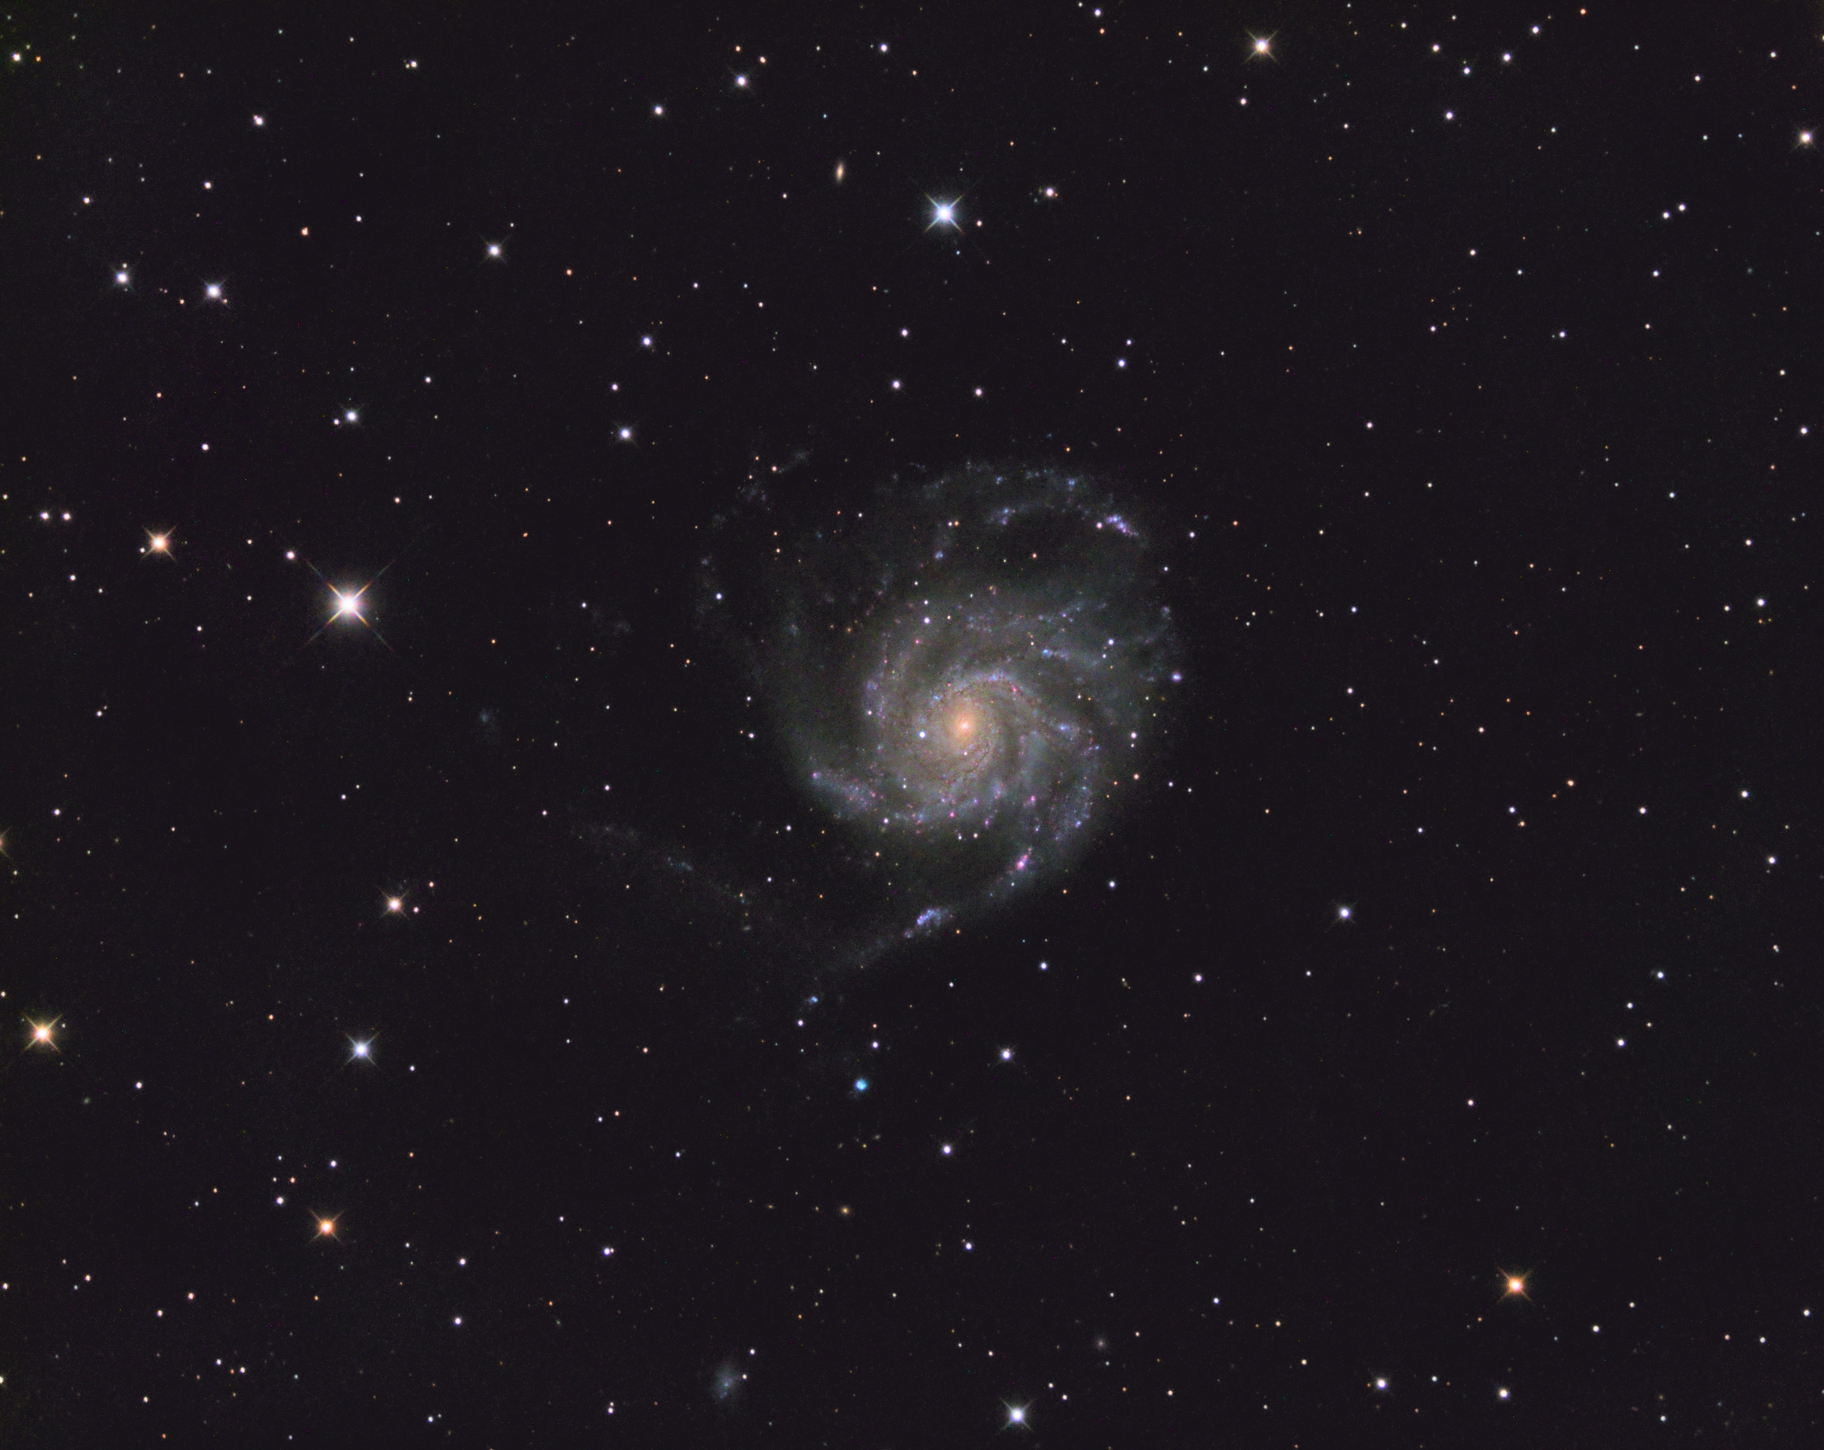 The final image of M101 taken during this session that I captured the above screens from. This was actually 17 hours done over three imaging sessions.